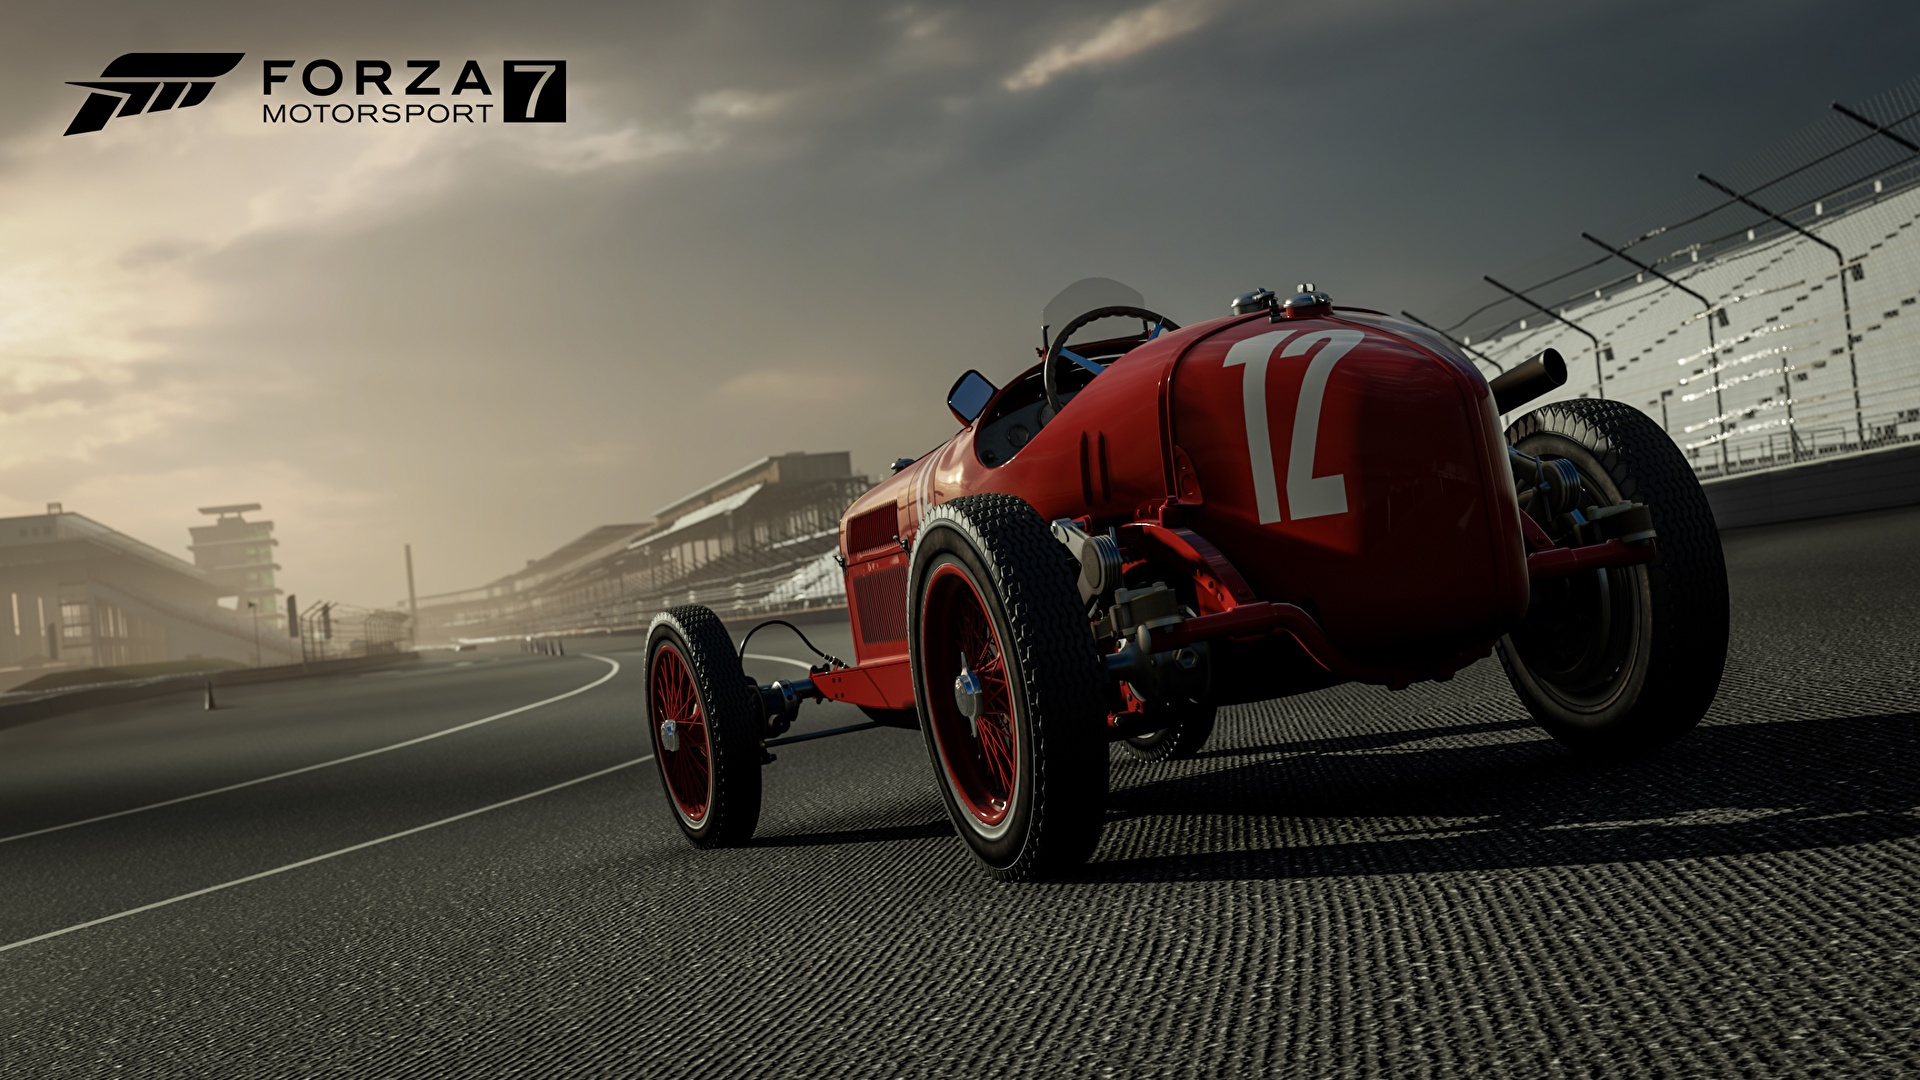 Desktop Wallpapers Forza Motorsport 7 Rallying Red Vdeo 1920x1080